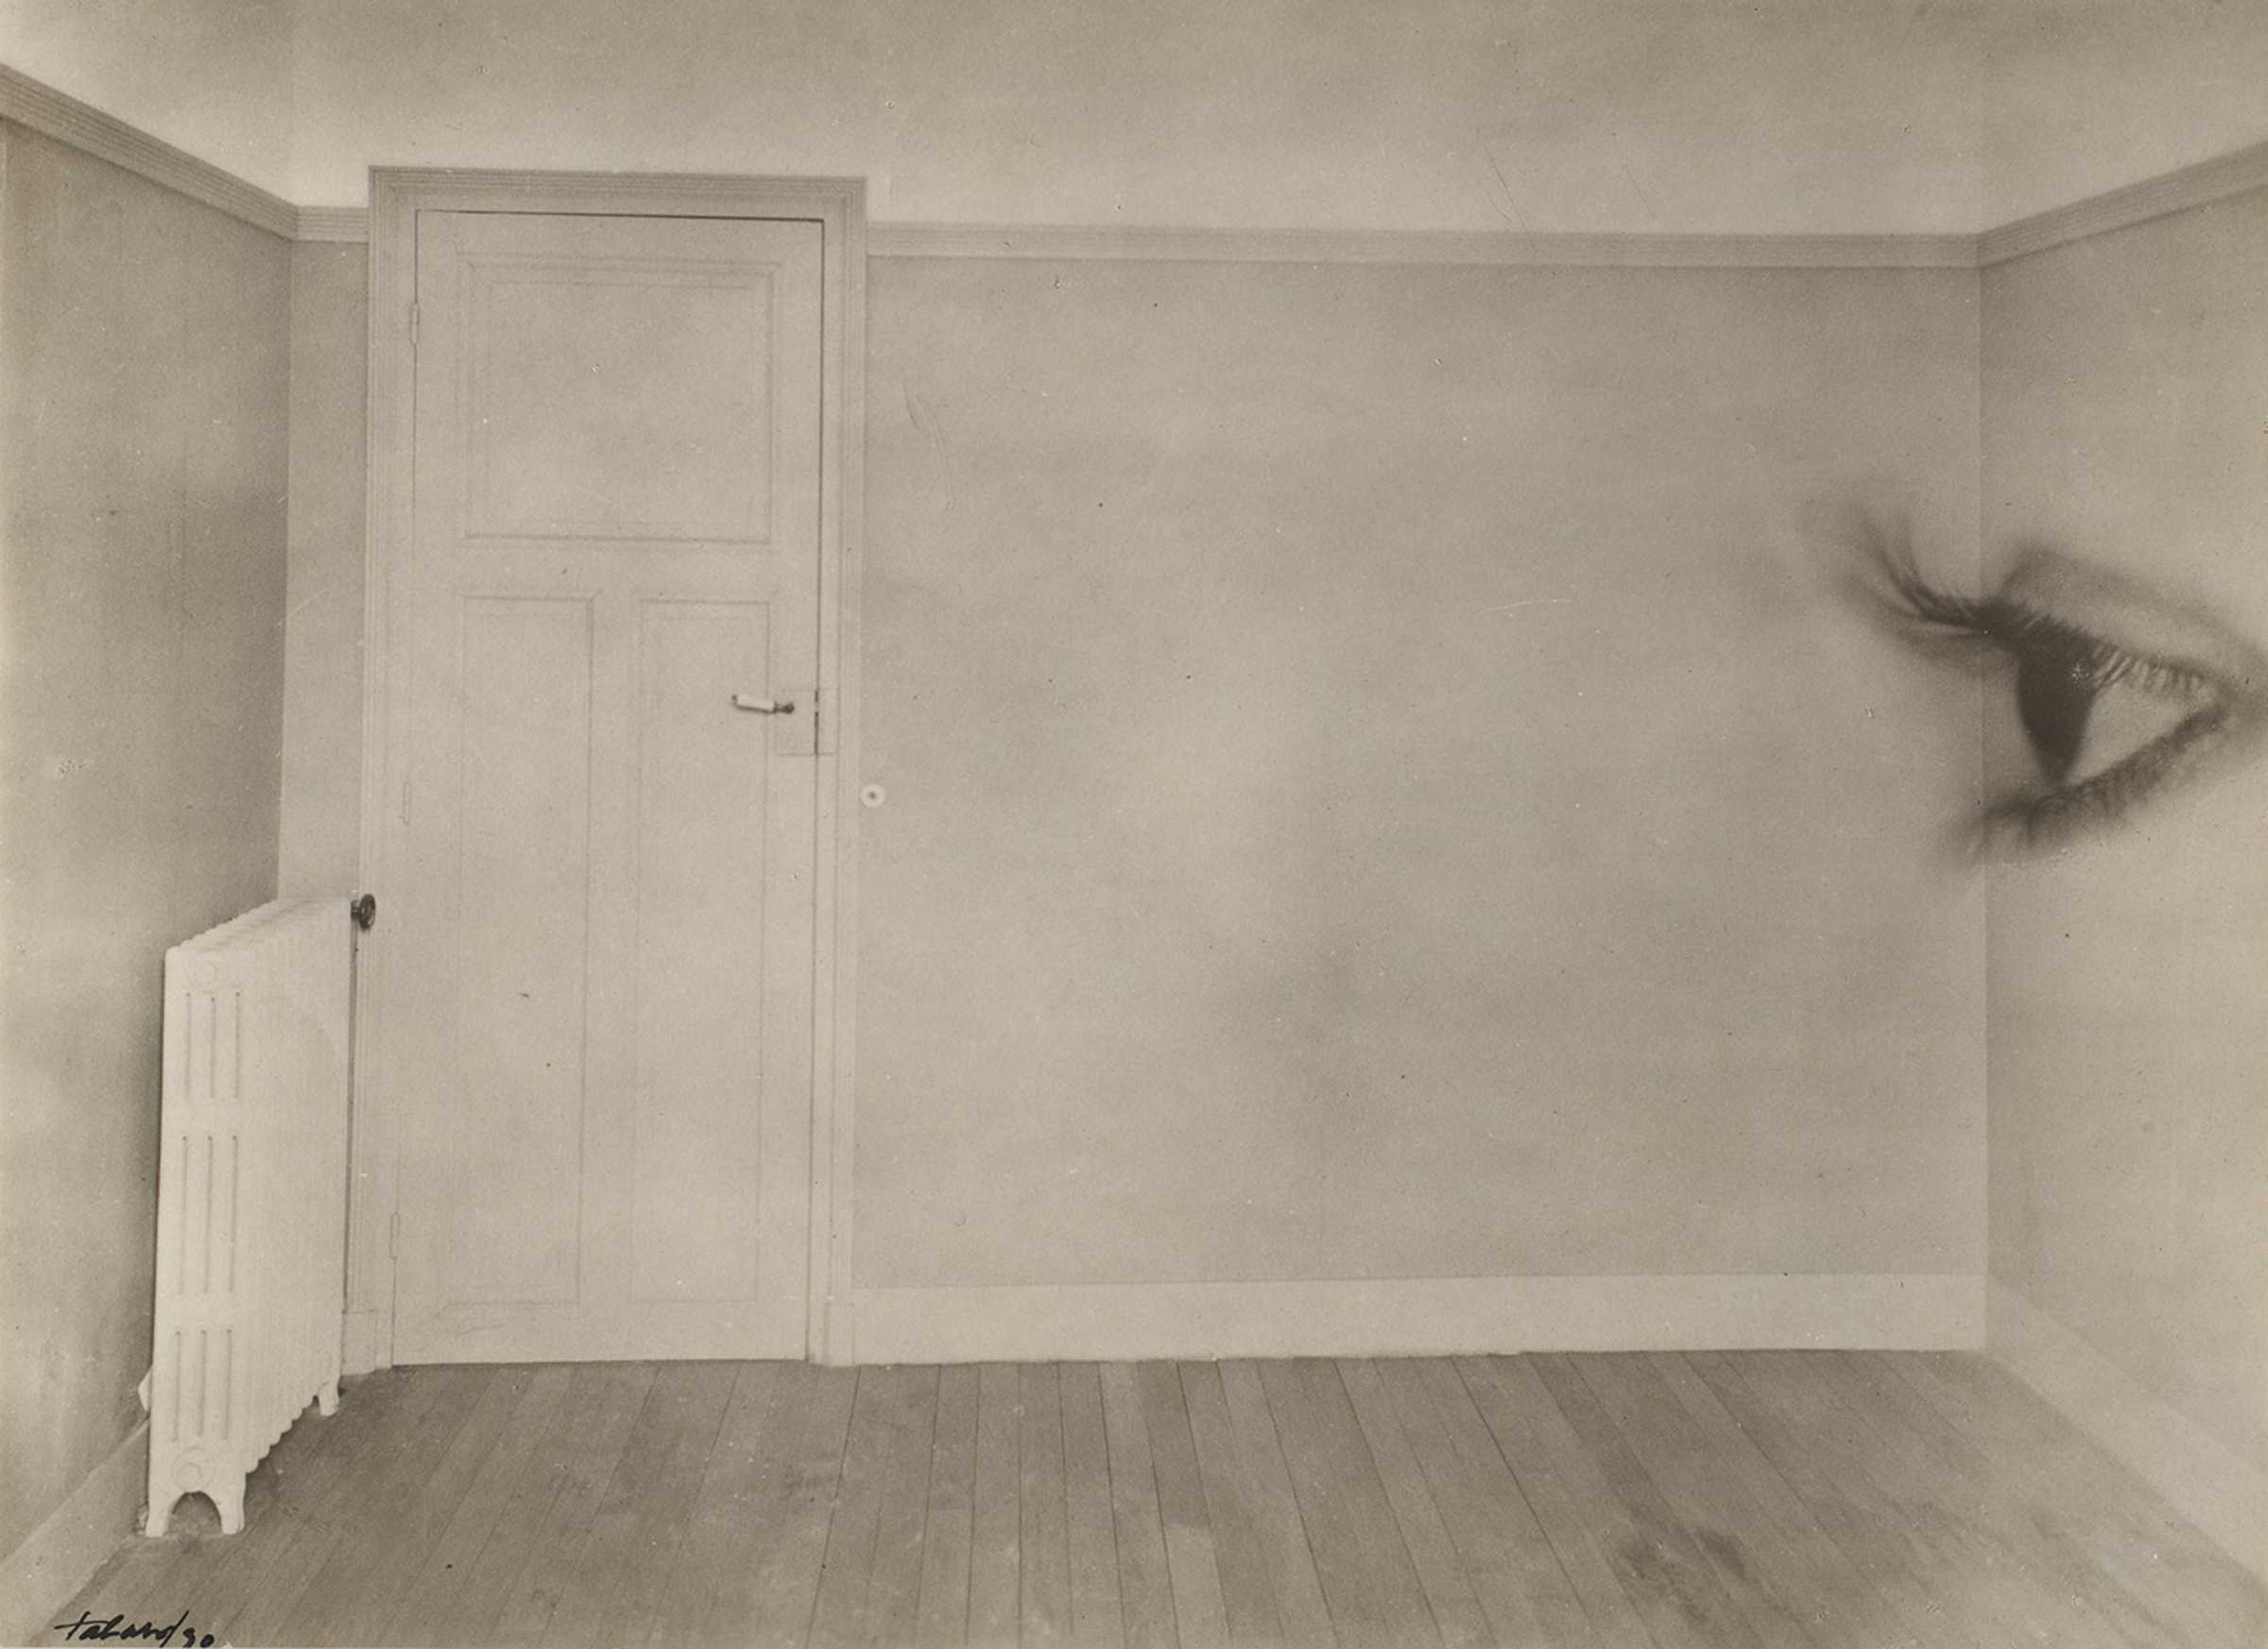 Maurice Tabard, Room with Eye, 1930, gelatin silver print, The Metropolitan Museum of Art, New York, The Elisha Whittelsey Collection, The Elisha Whittelsey Fund, 1962. Image © The Metropolitan Museum of Art